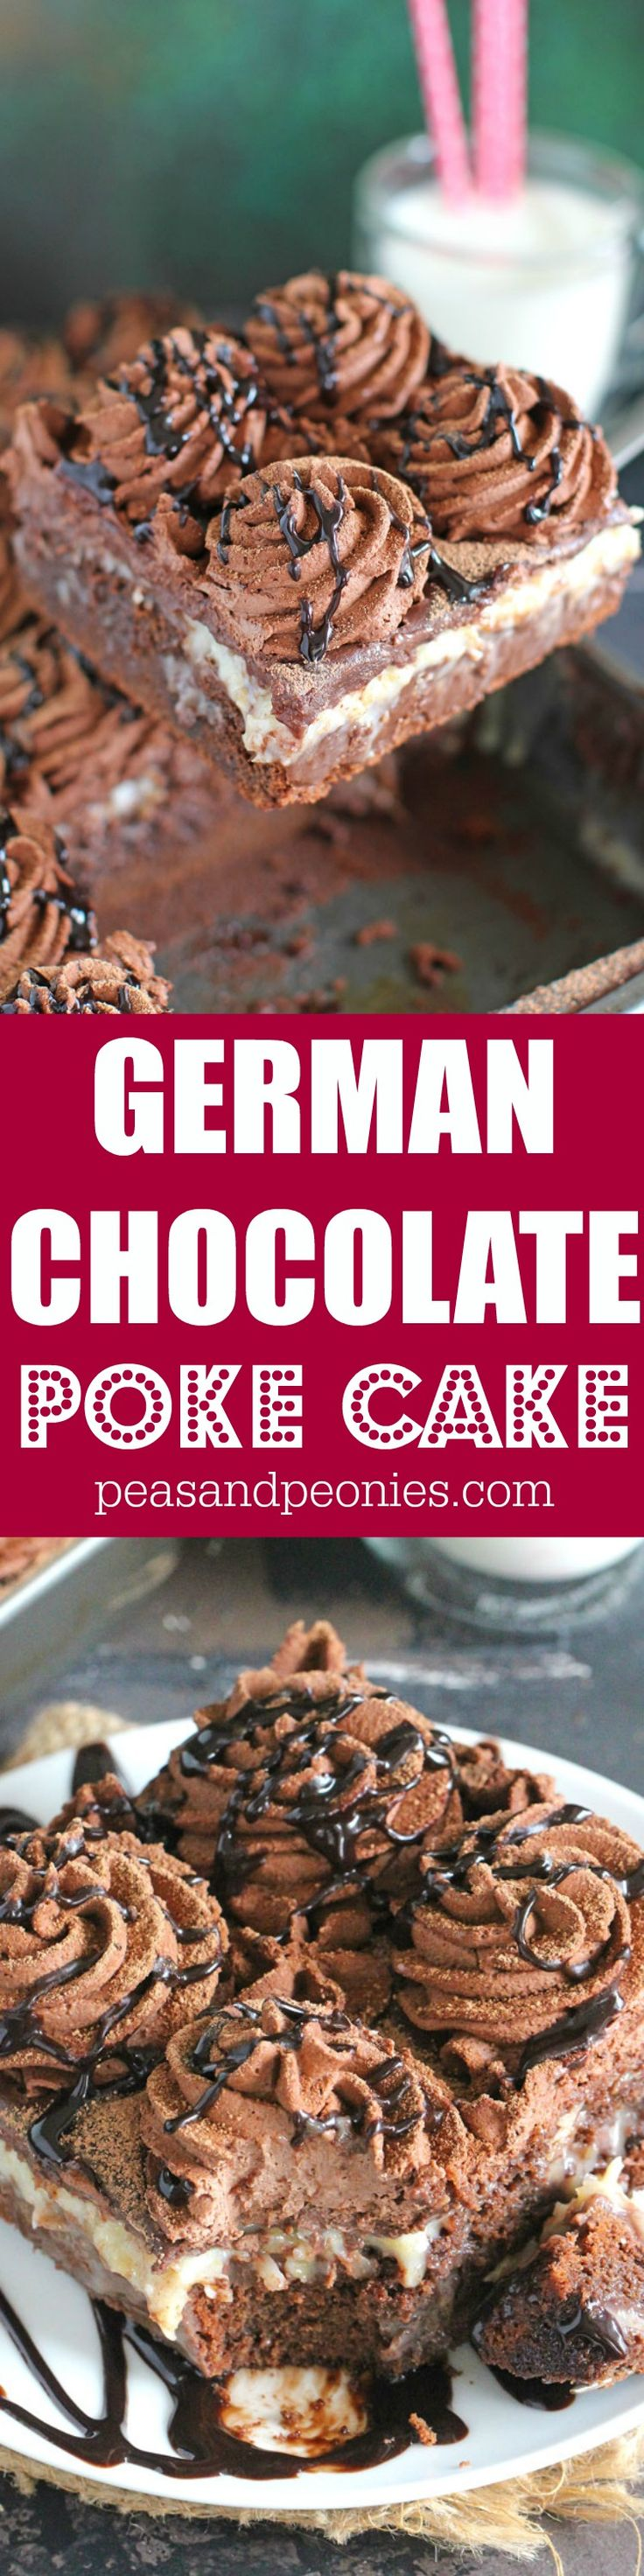 German Chocolate Poke Cake is very easy to make with a super fudgy and tender texture, topped with a sweet coconut mixture and chocolate whipped cream.